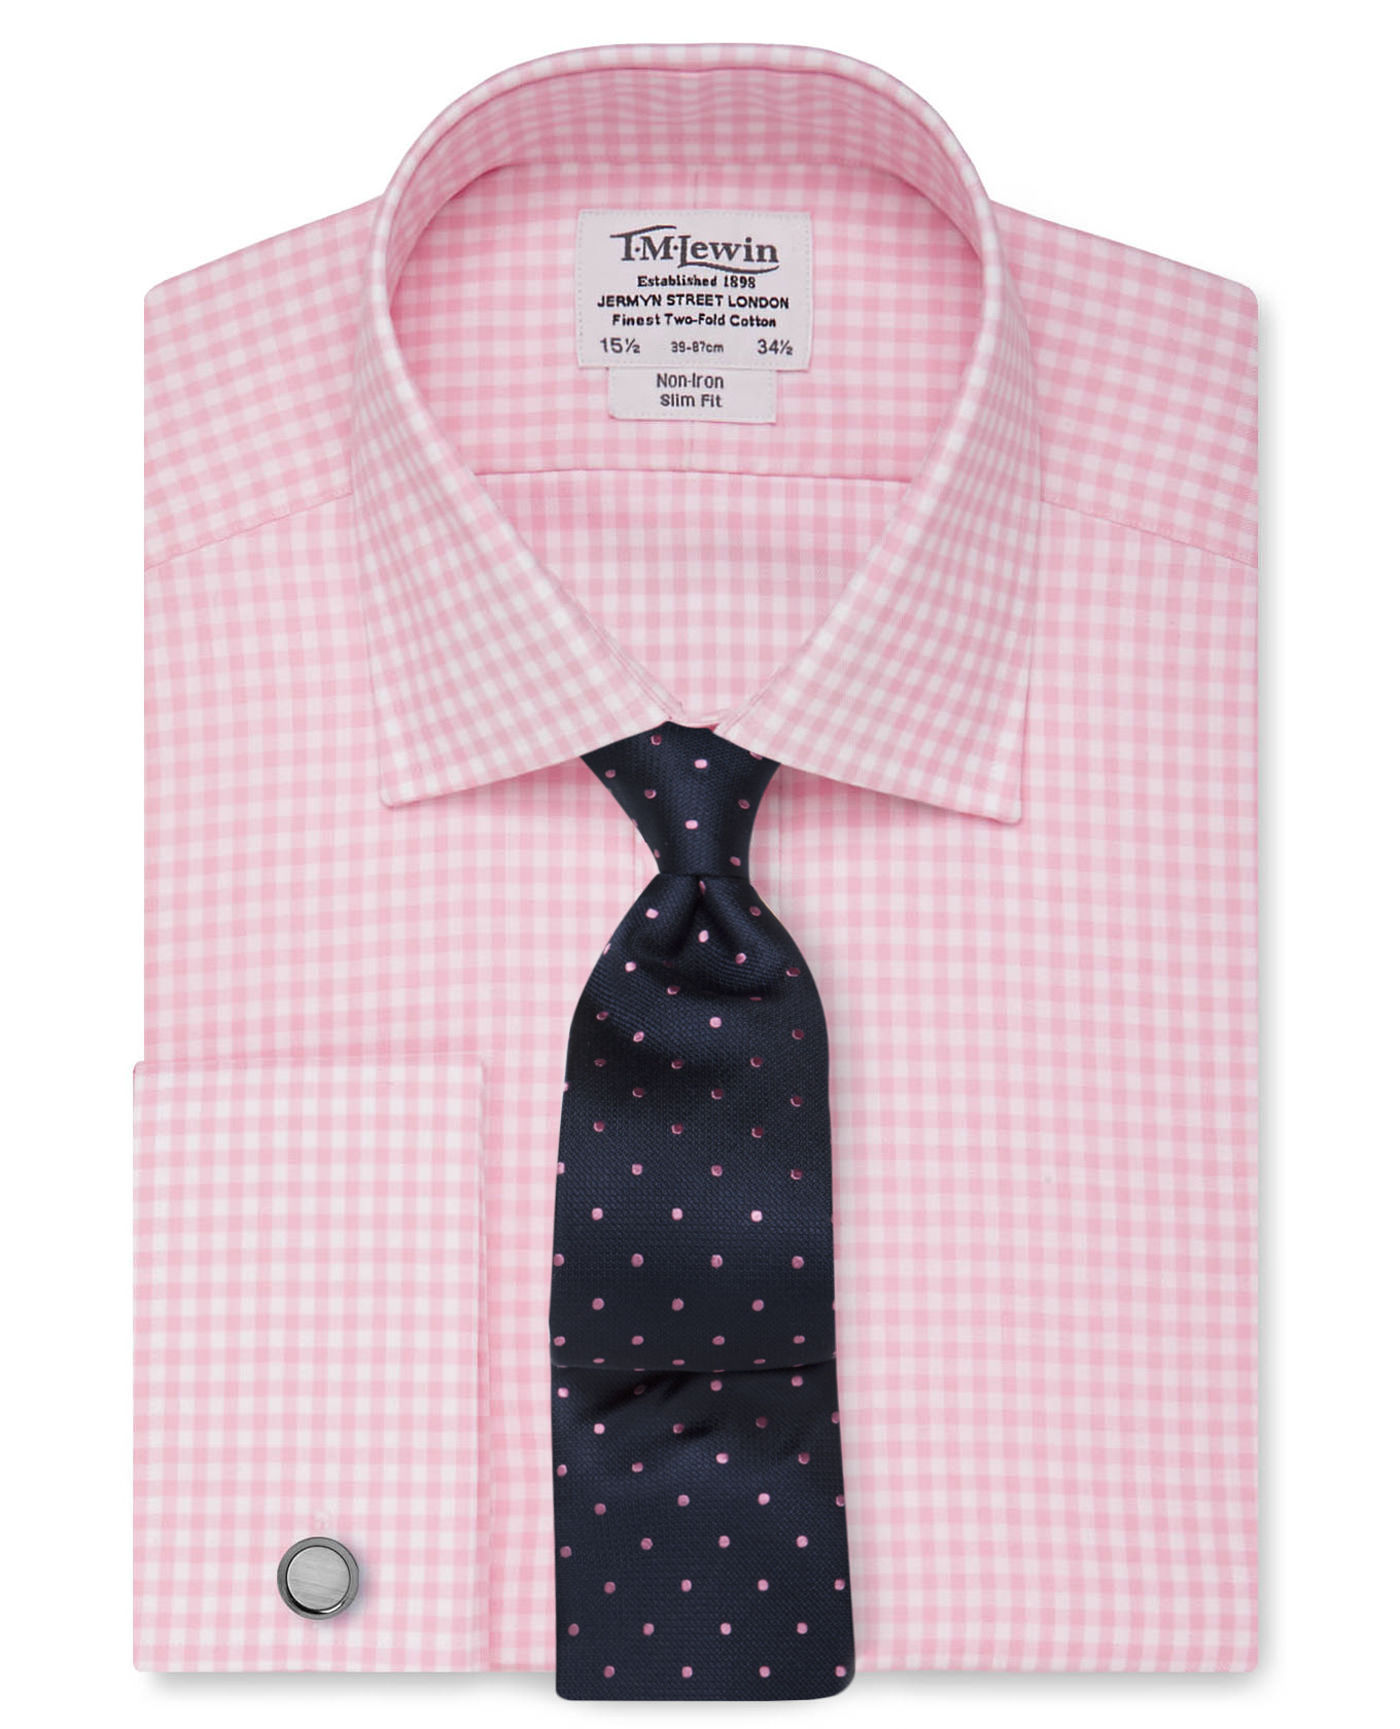 T.M.Lewin Non-Iron Light Pink Gingham Slim Fit Shirt